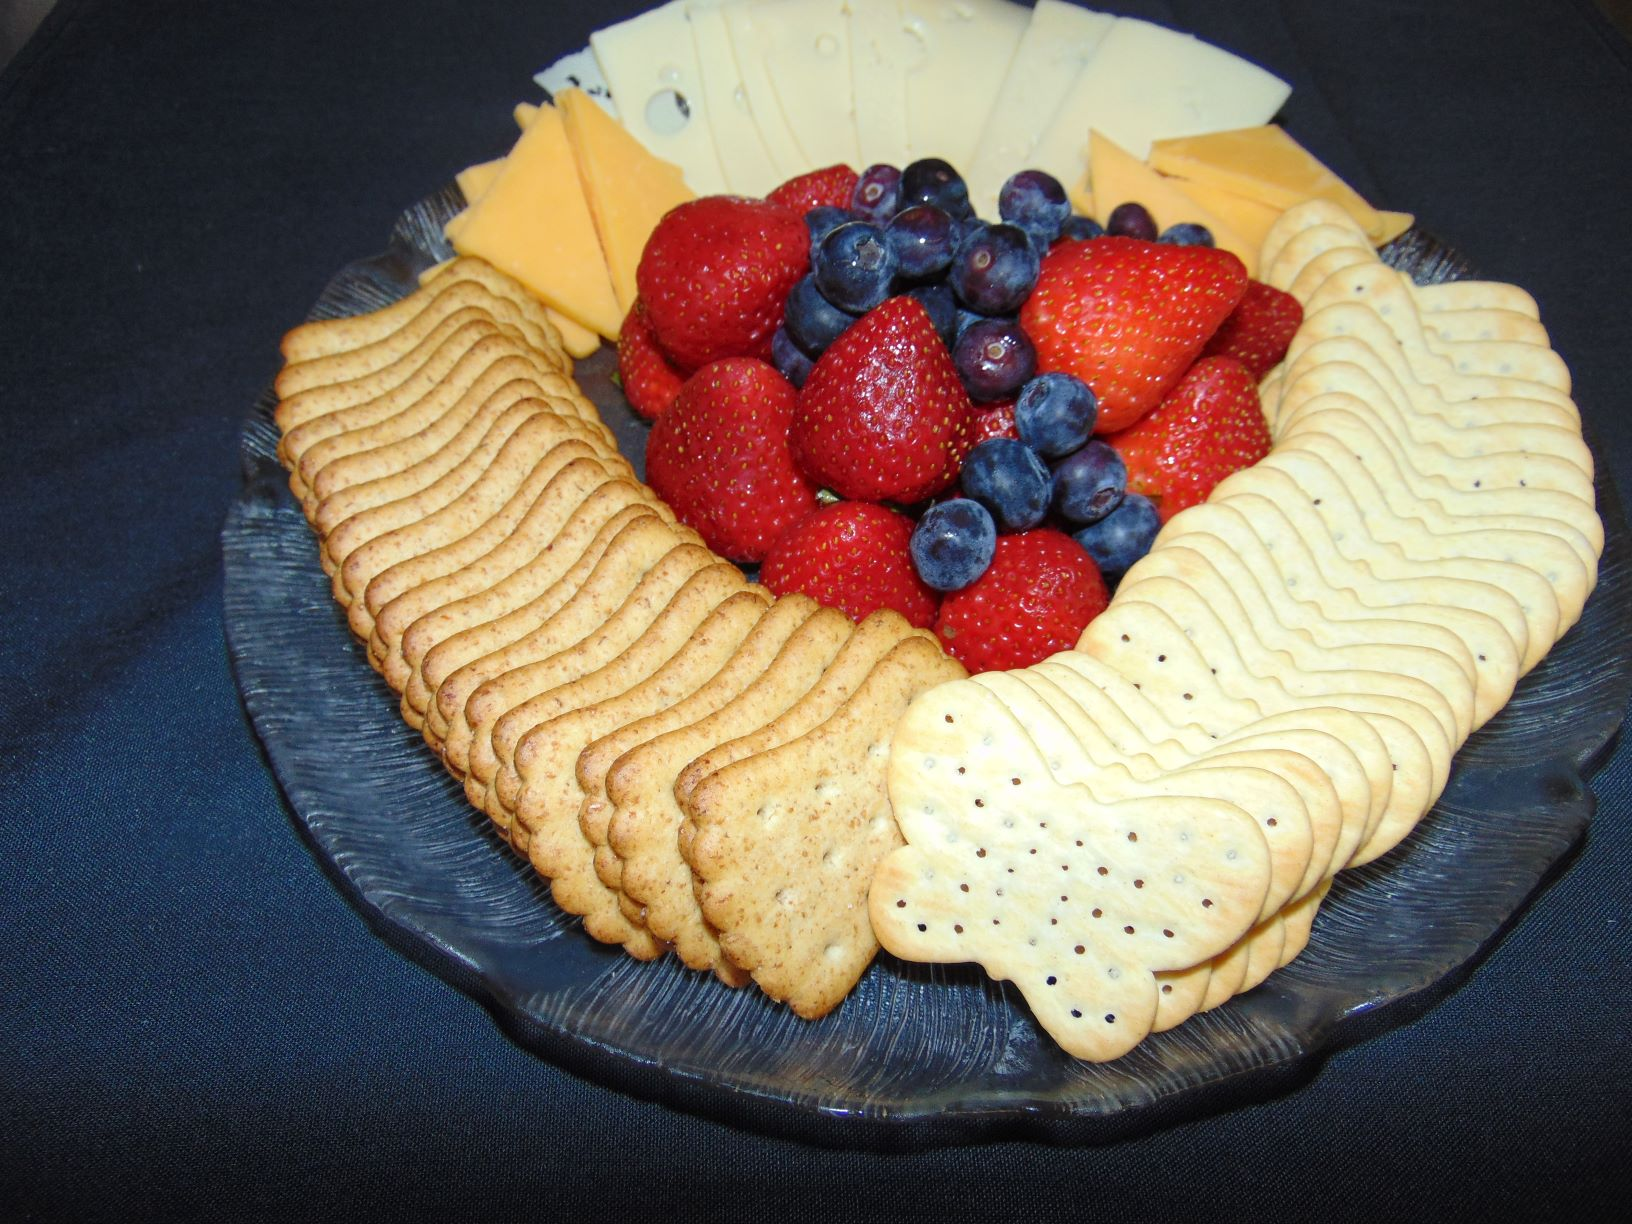 cheese, crackers, fruit